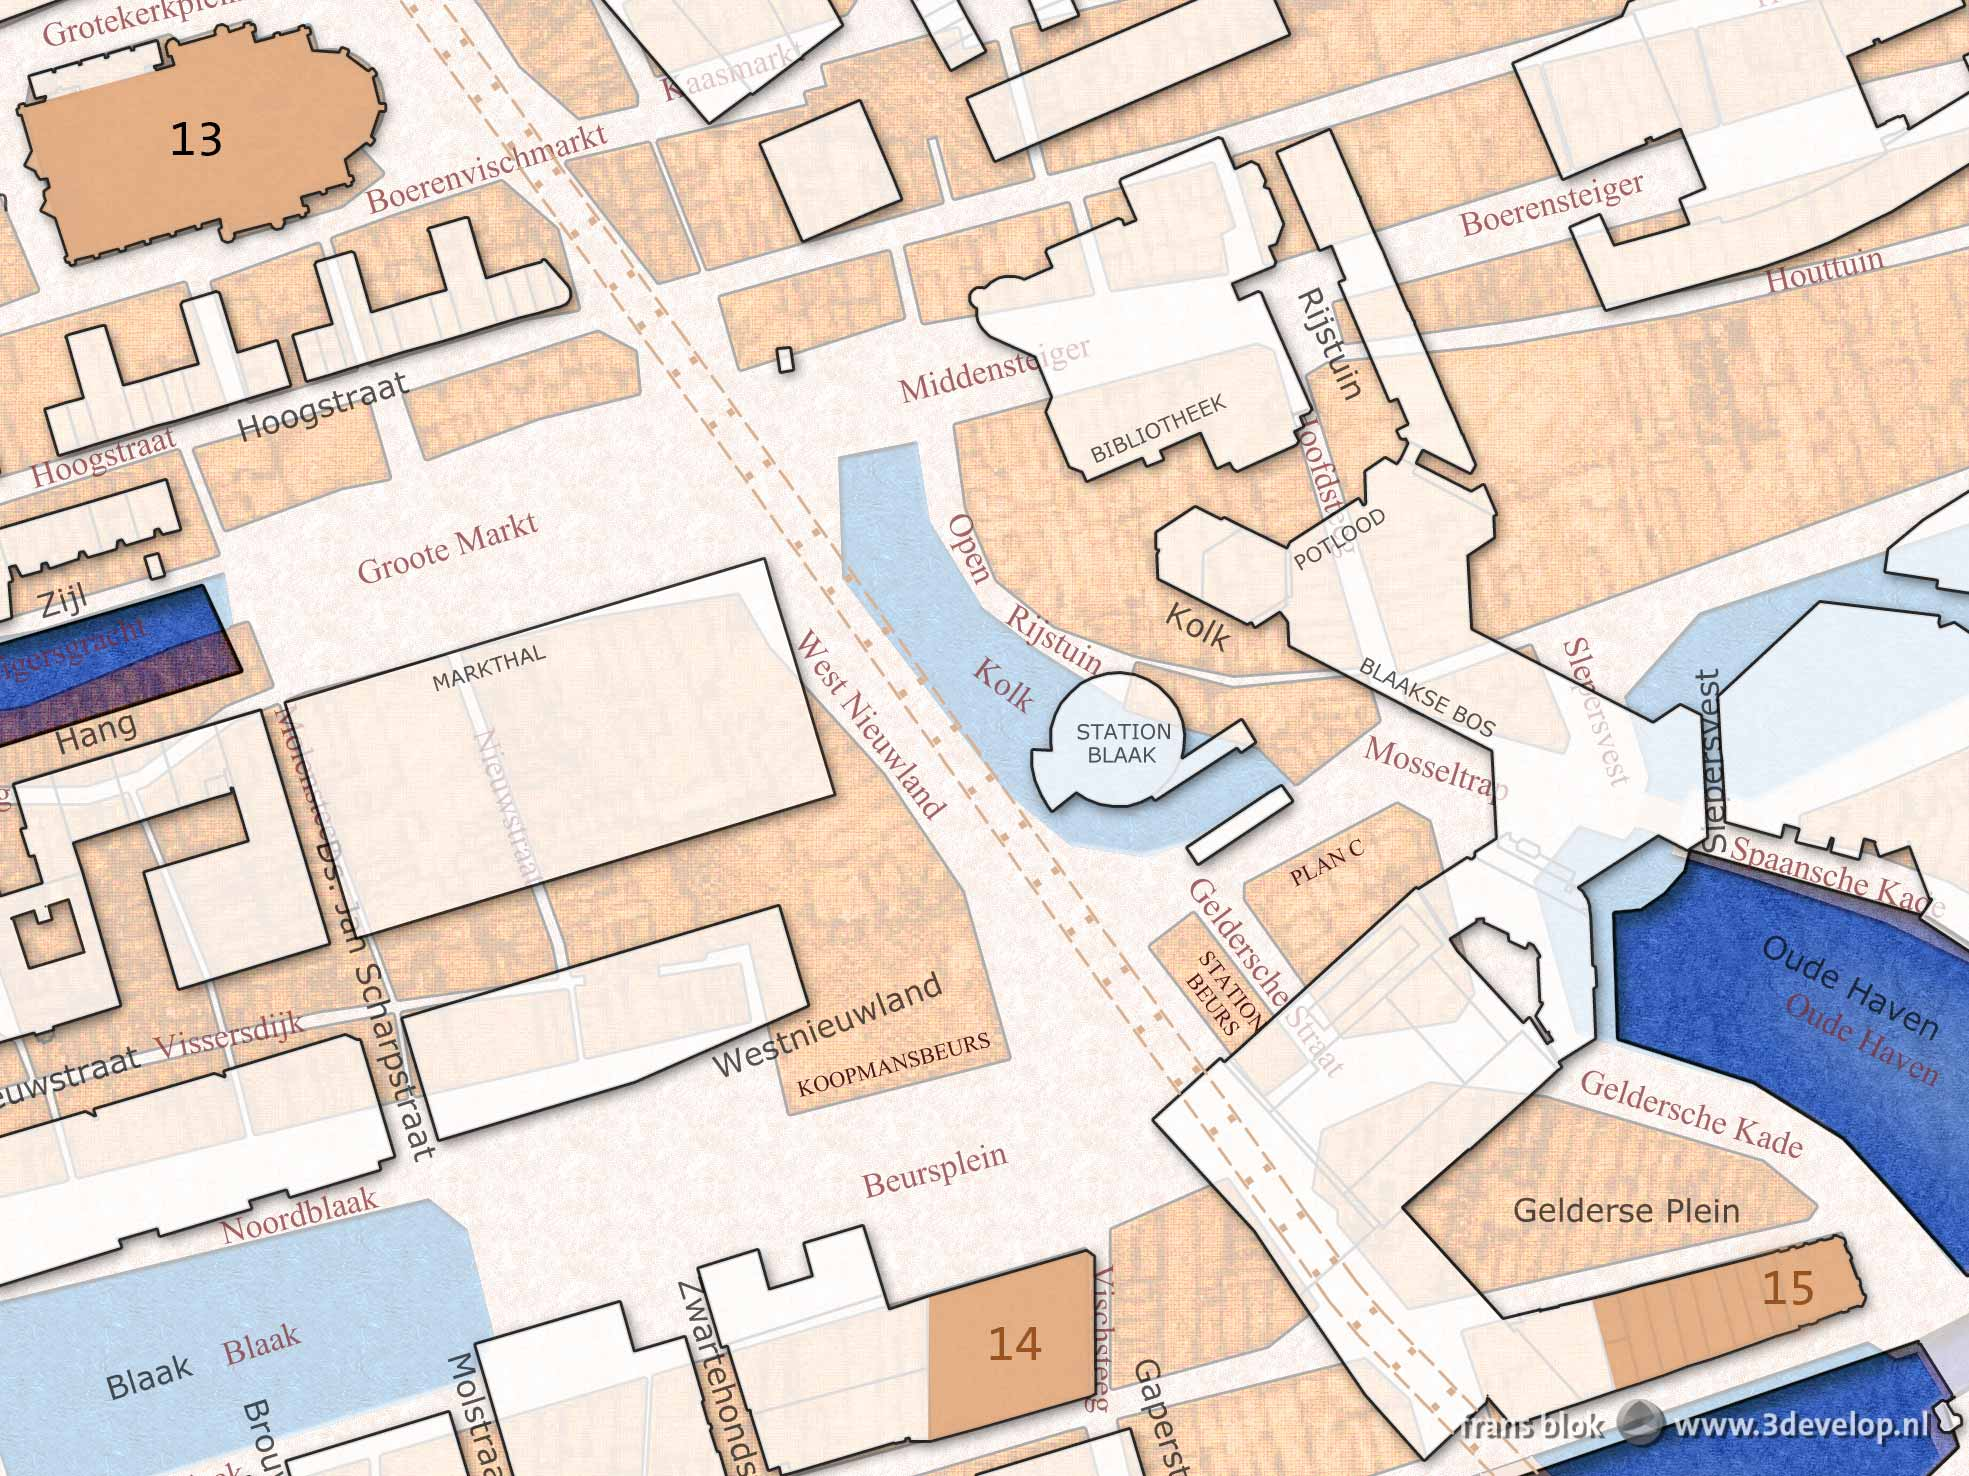 Fragment of the double street map Rotterdam 1939-2016 showing the area between Saint Lawrence Church and the White House, including Markthal, Library and Cube Houses